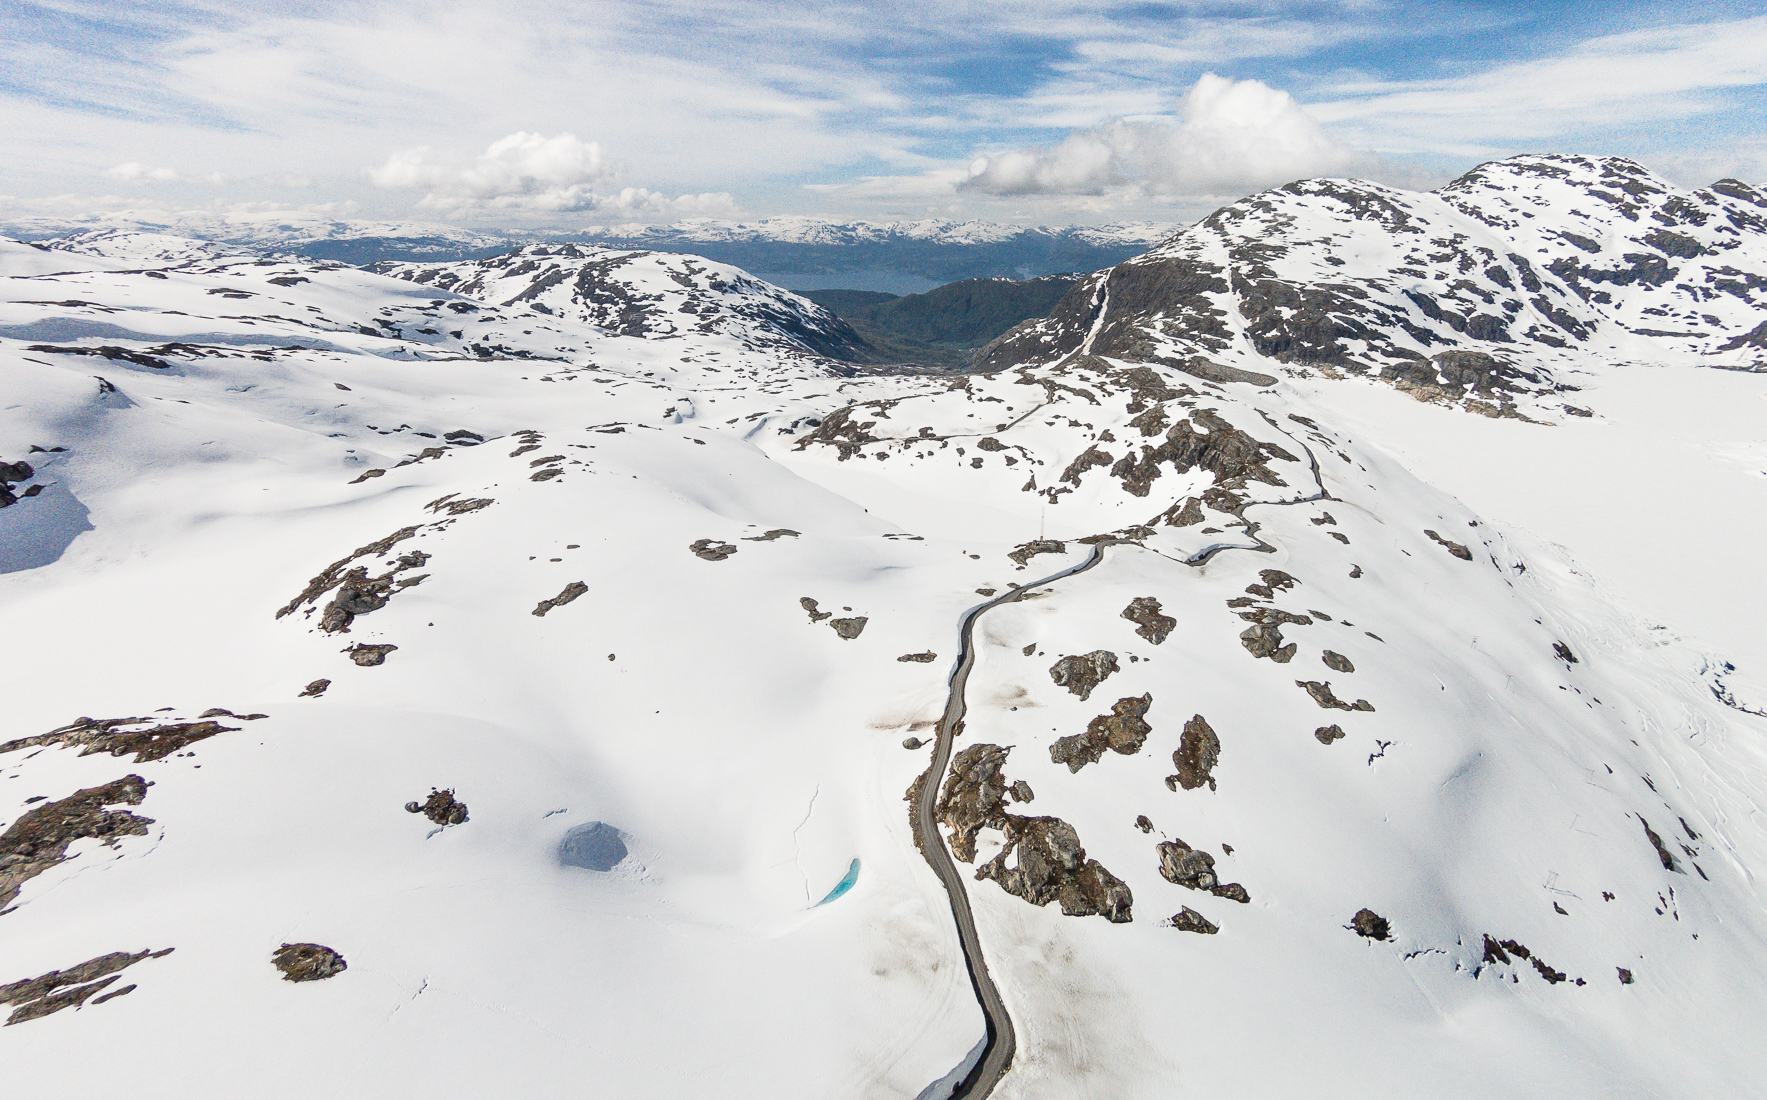 Taken above the road to Folgefonna Sommarski ski resort, on Folgefonna Glacier in Hardanger, Norway.